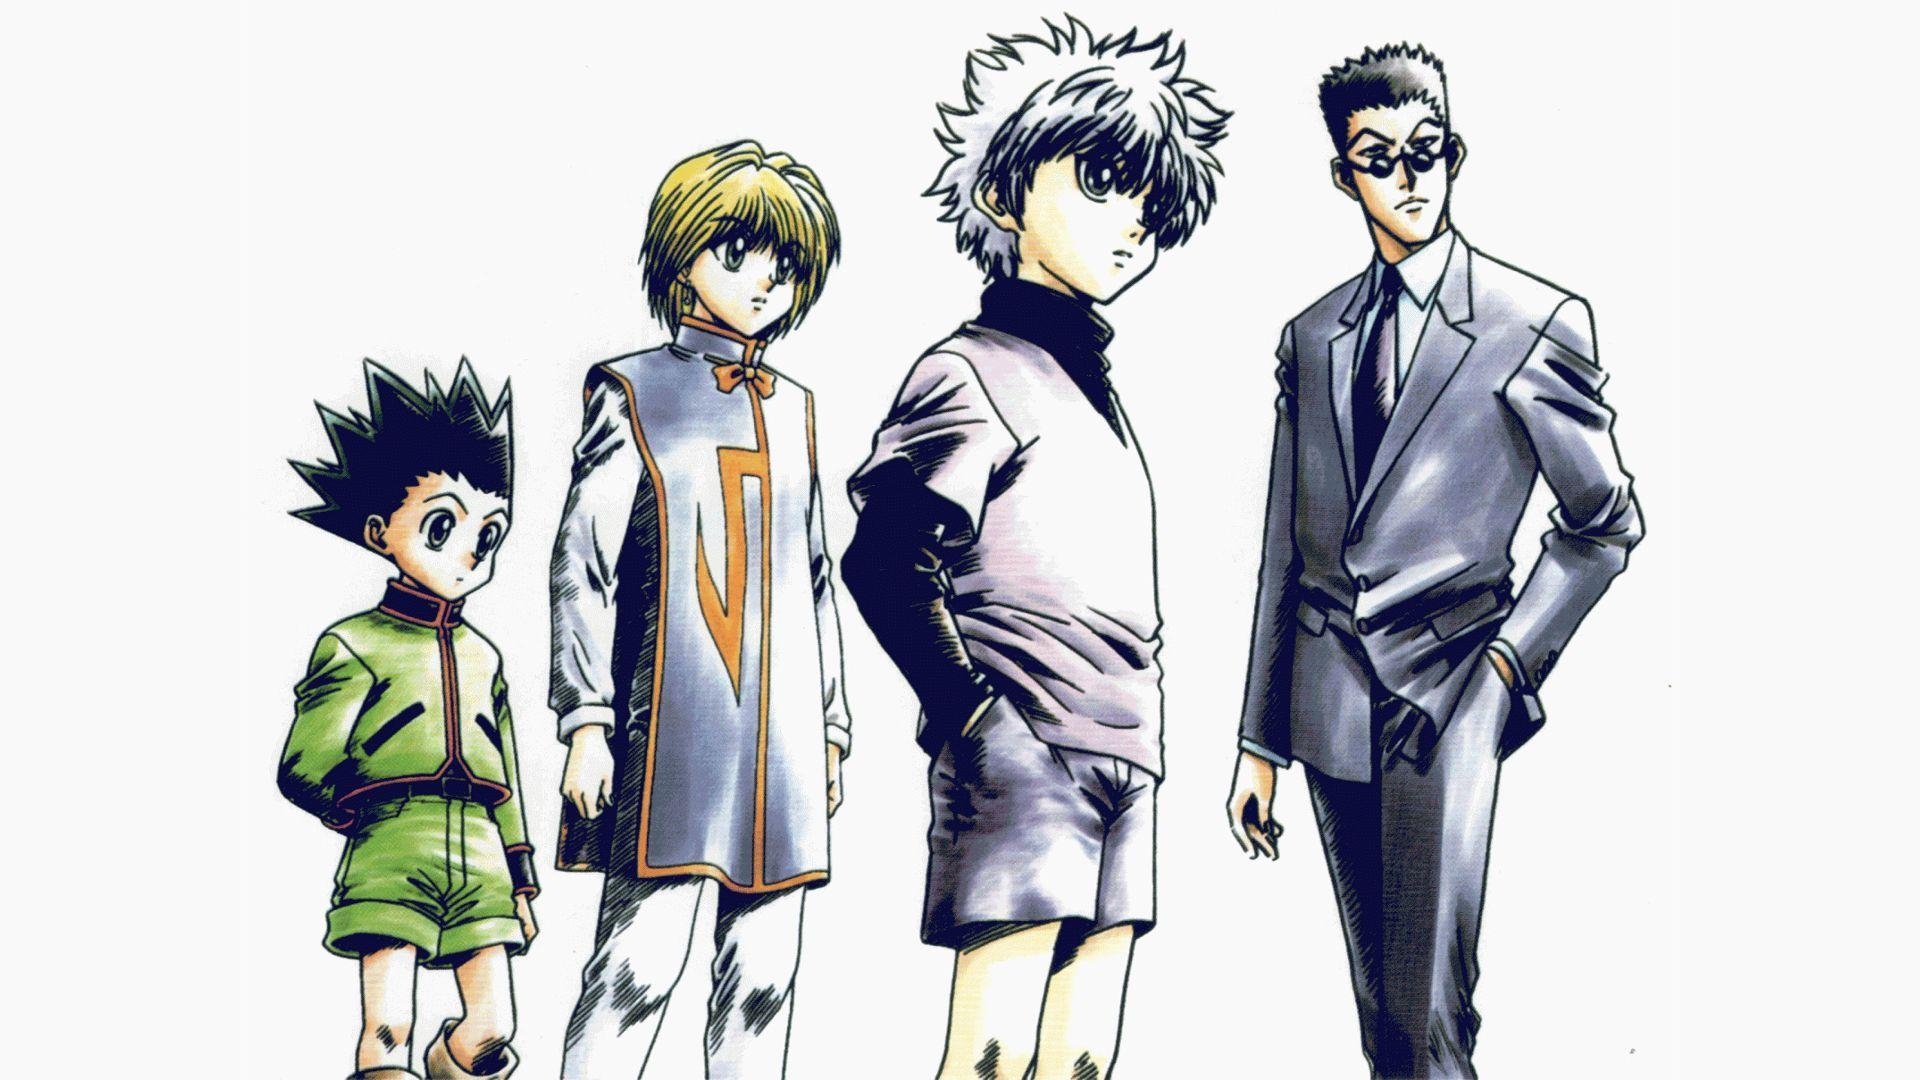 Hunter x Hunter HD Wallpaper | 1920x1080 | ID:57153